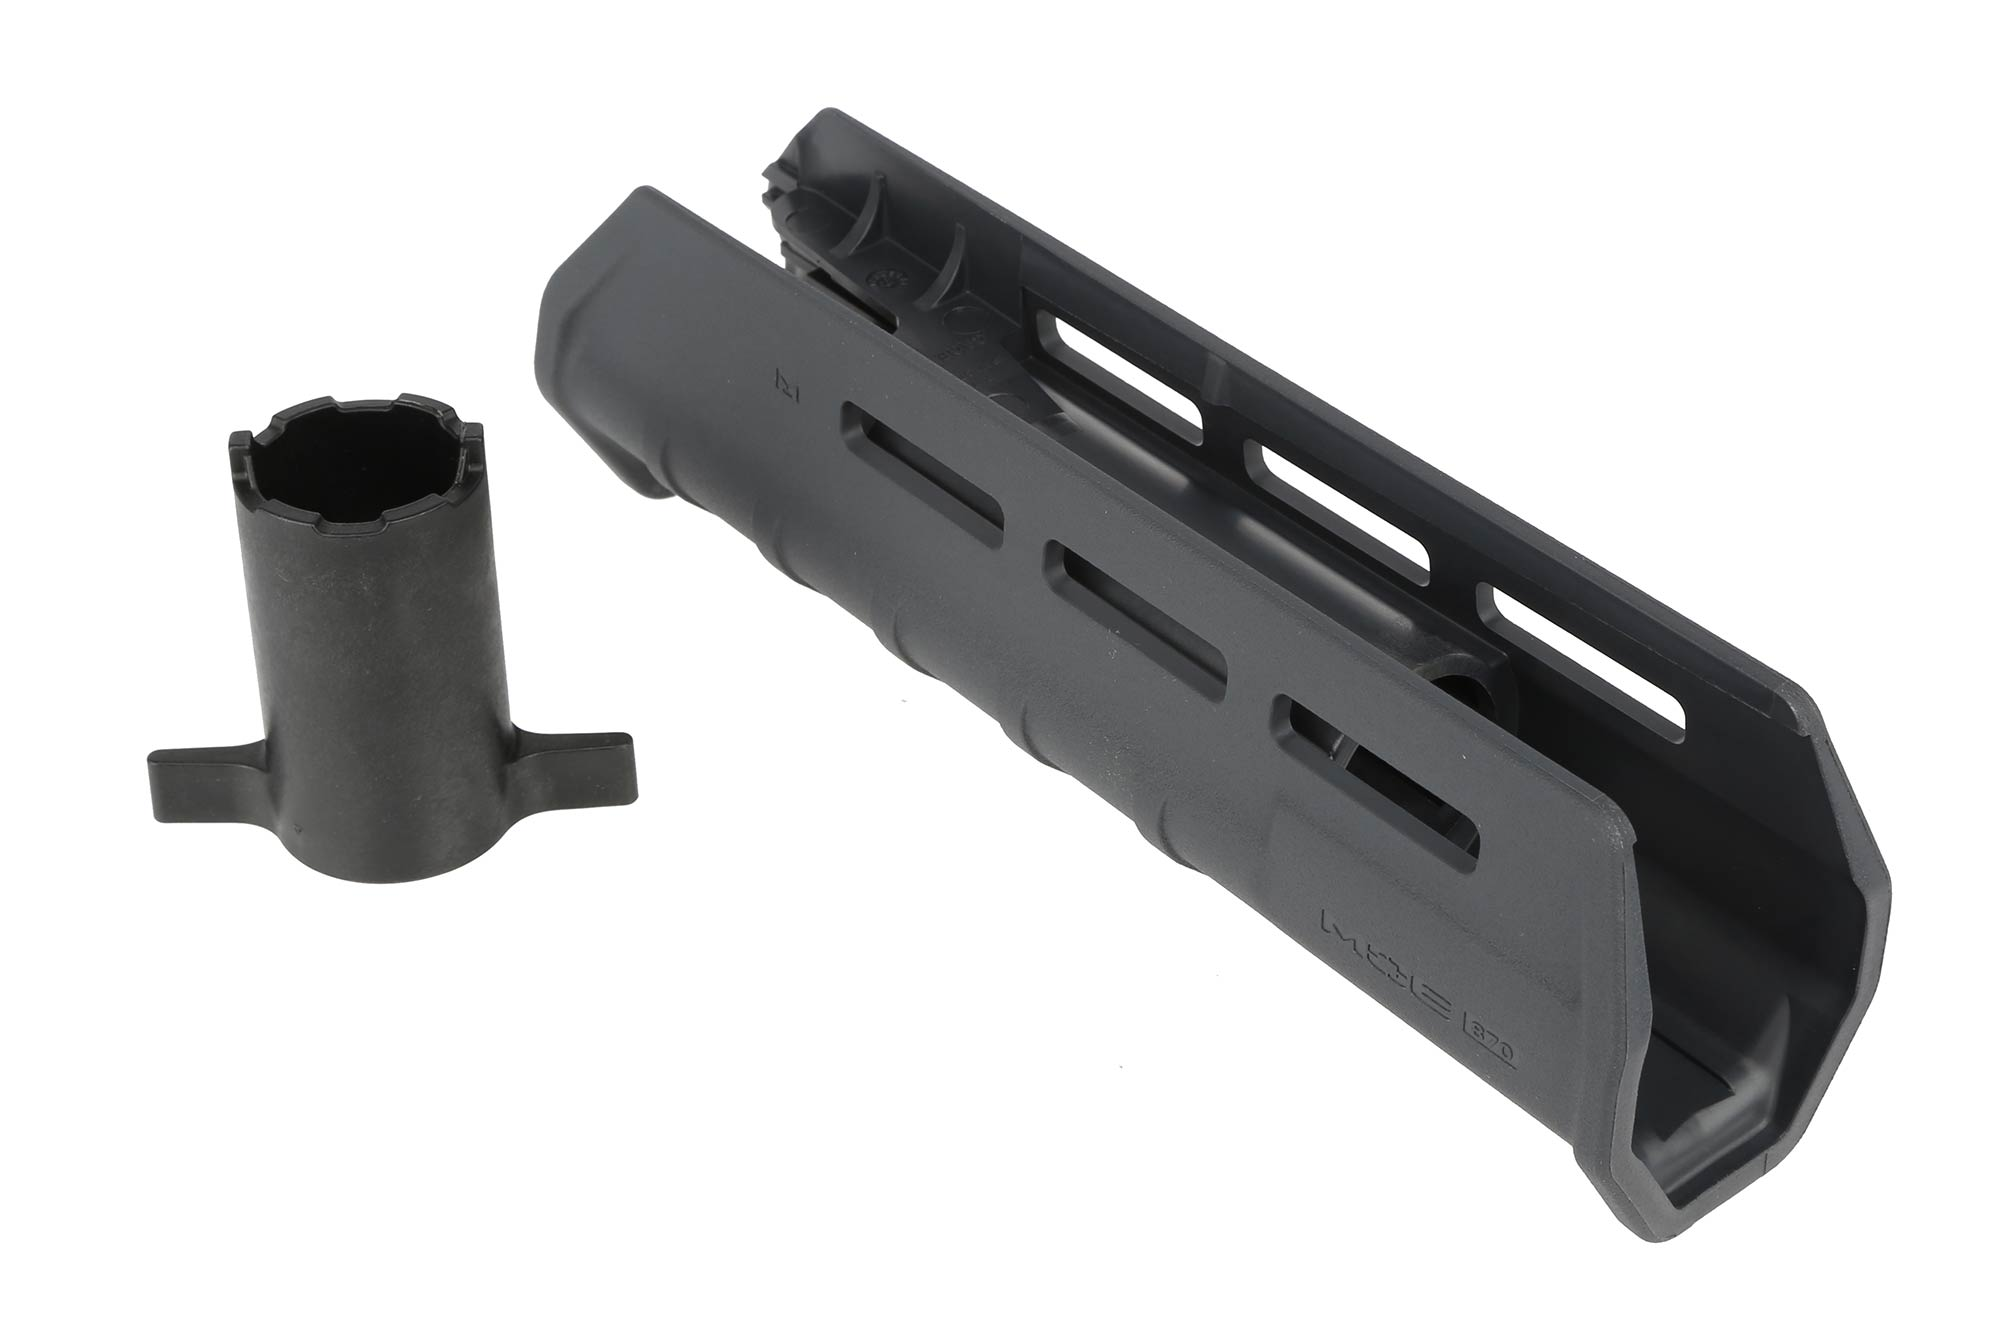 The mossberg 590 Magpul M-LOK forend comes with a tool for ease of installation